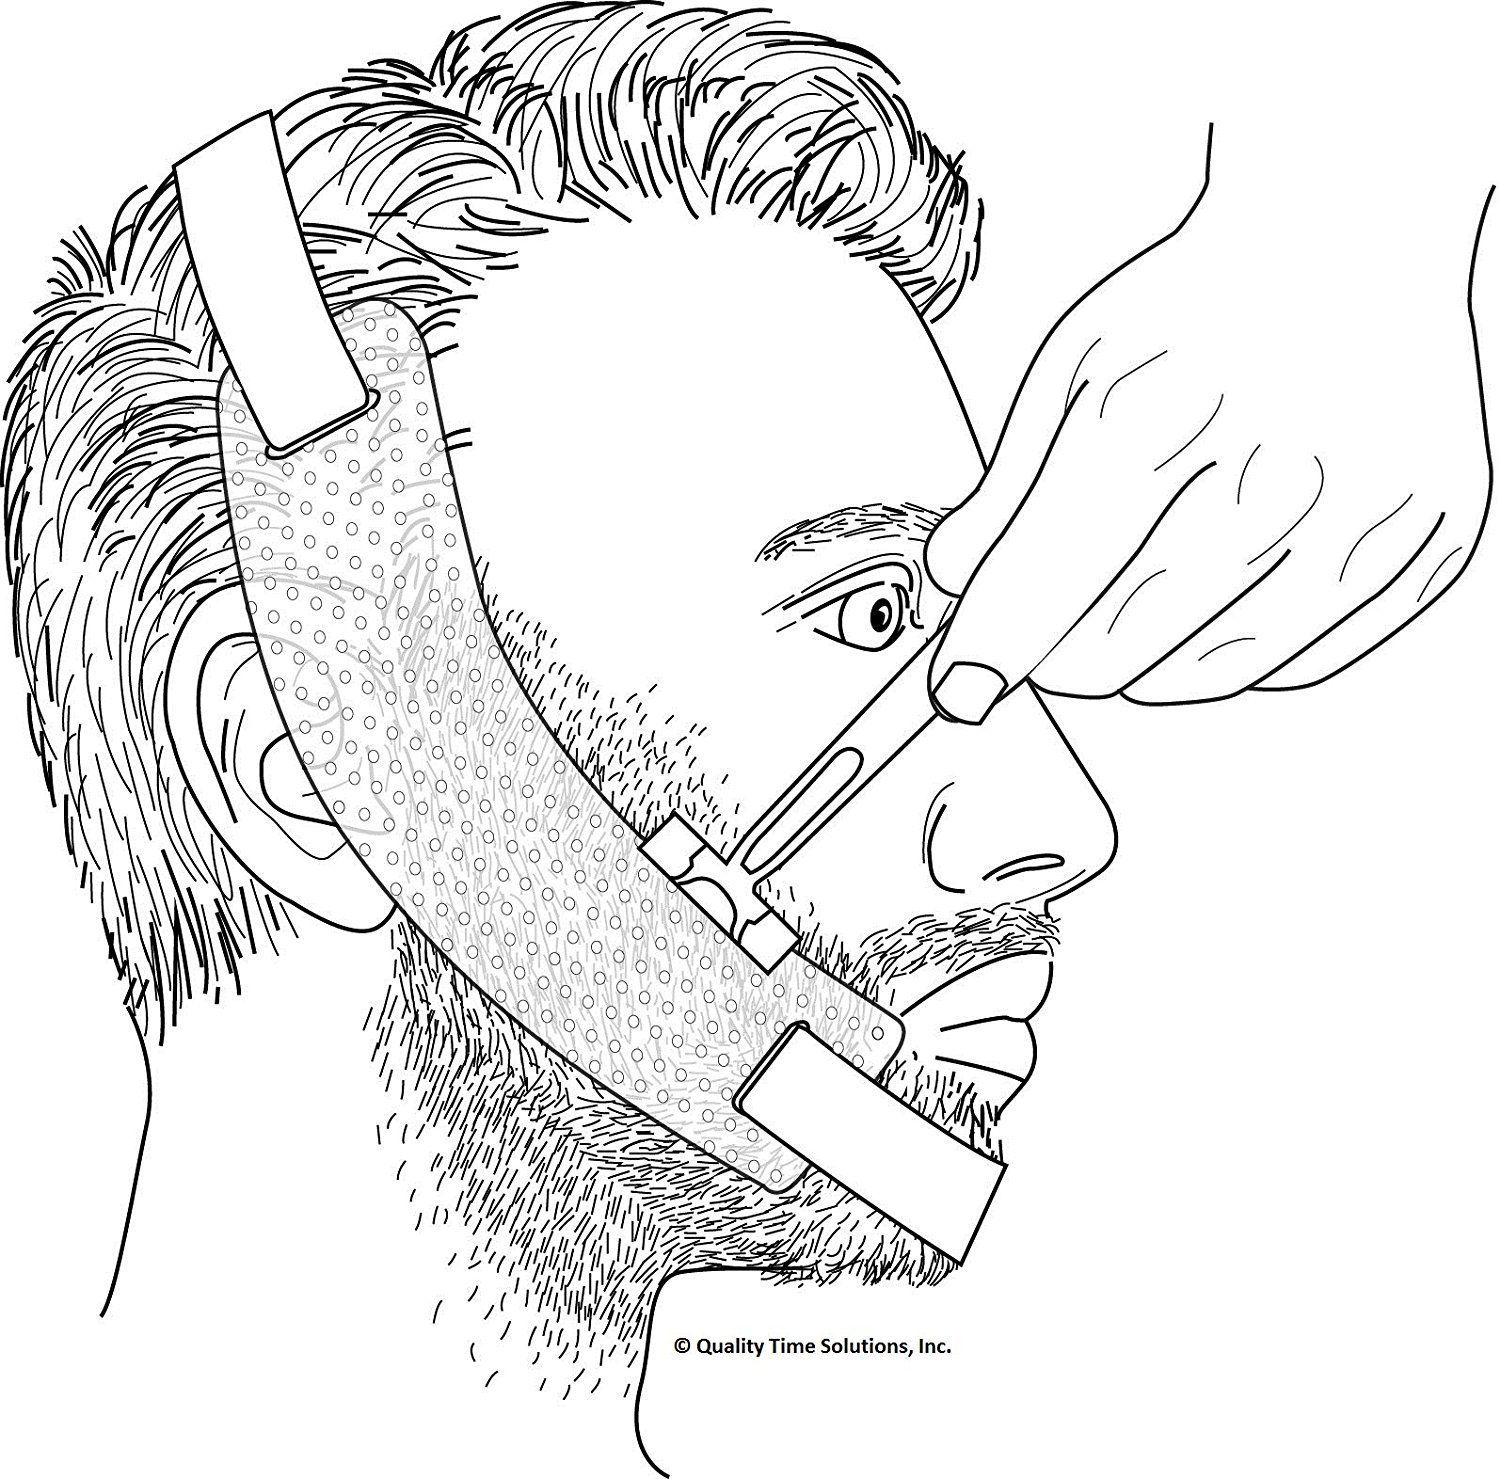 graphic about Beard Shaping Template Printable known as 8 Unusual Mens Grooming Products That Your self In no way Understood Existed